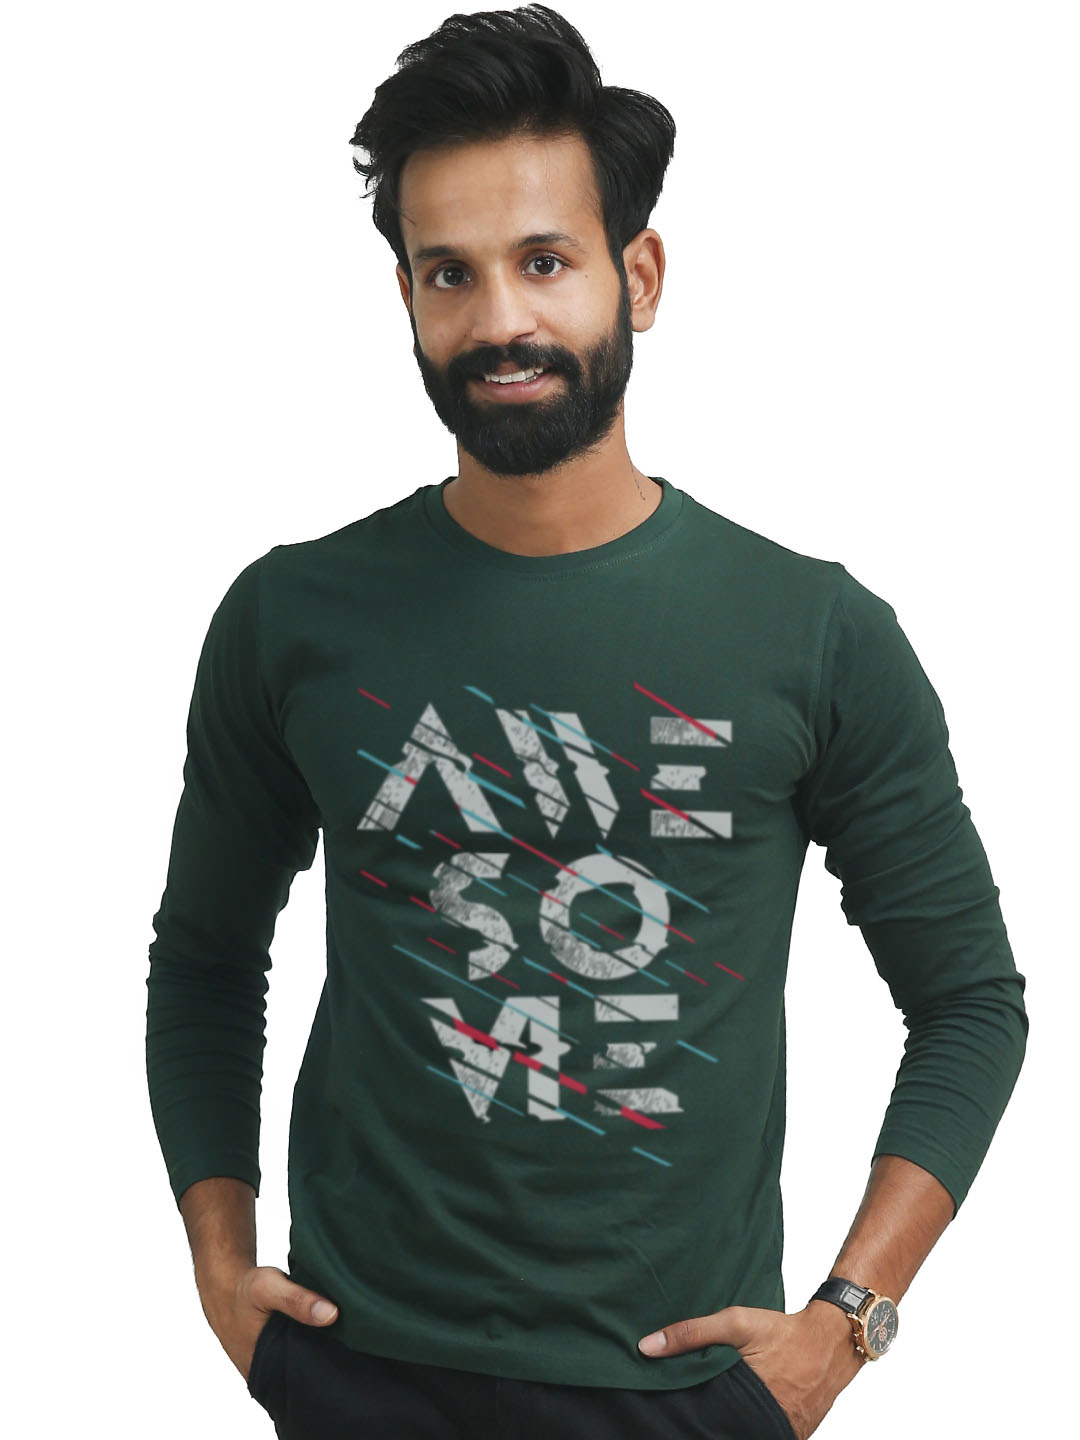 Awesome Full Sleeves T-shirt